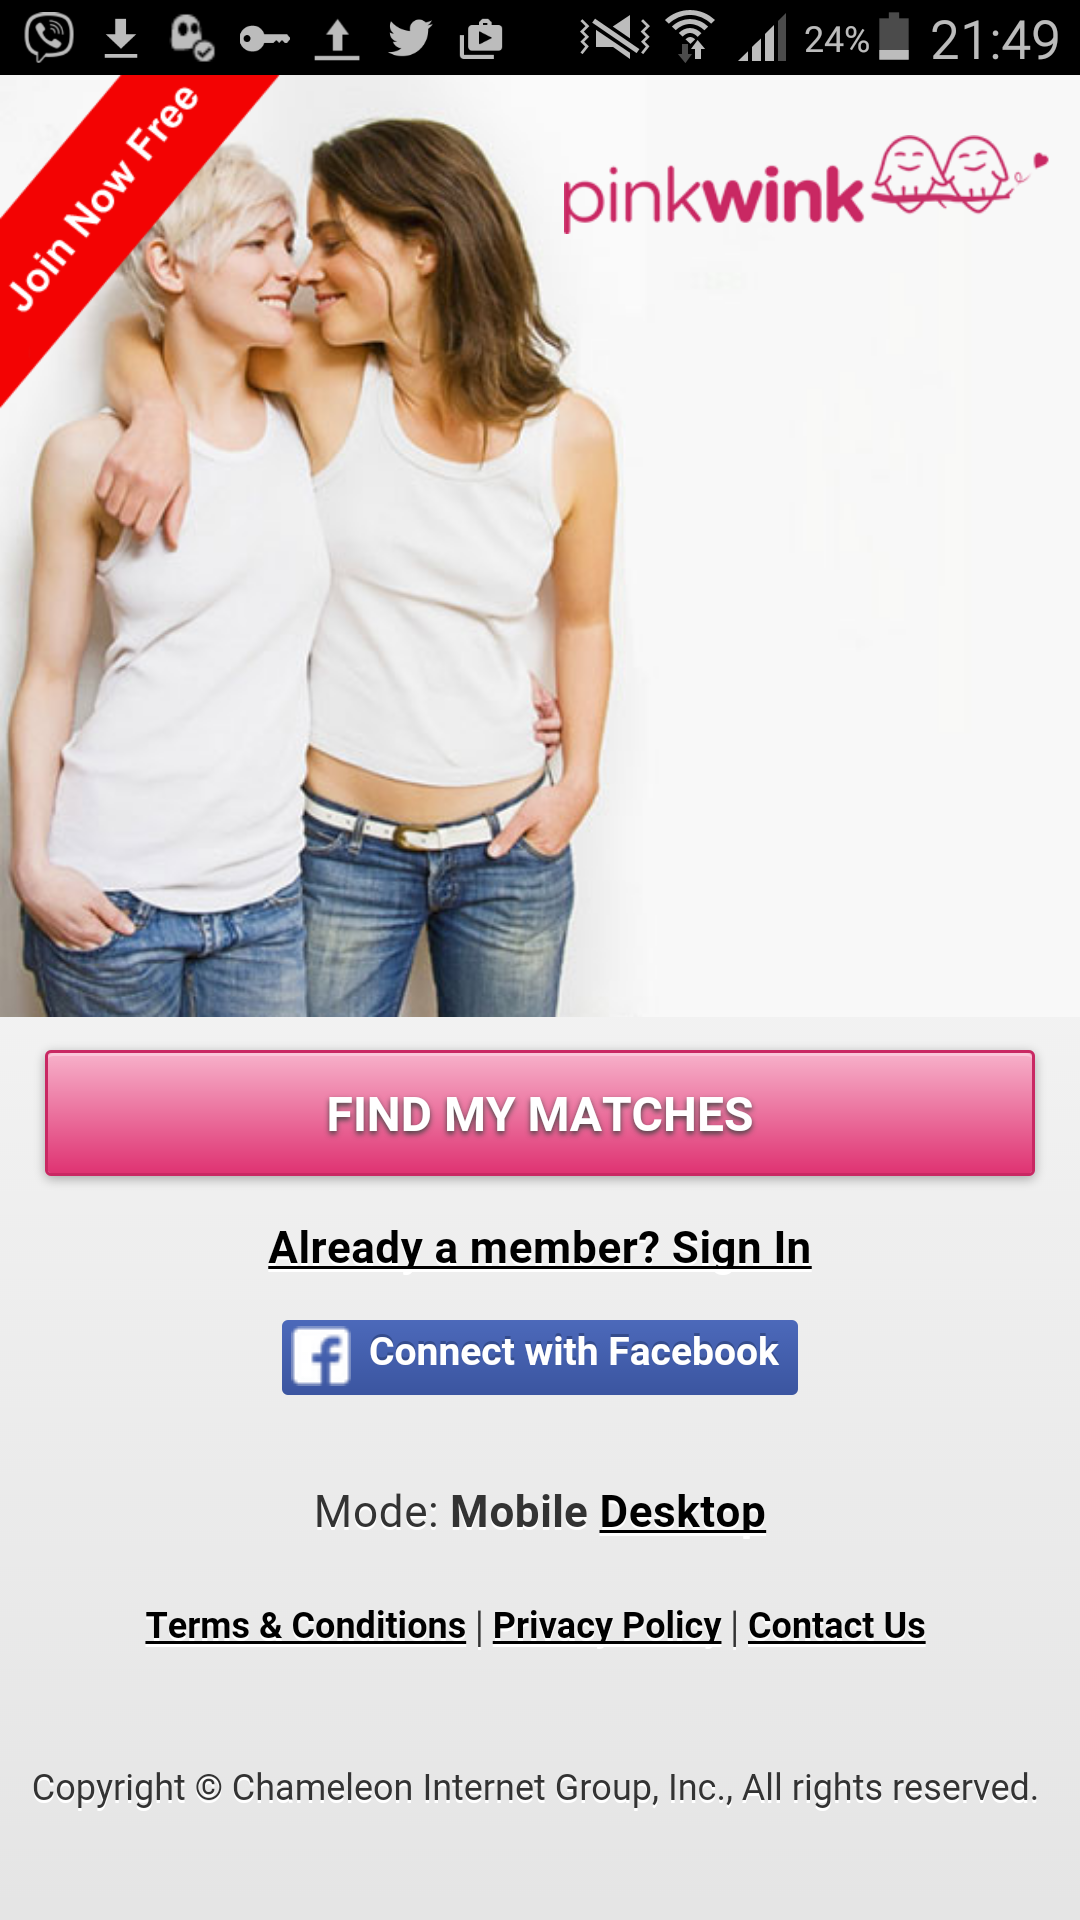 footville lesbian dating site Real estate news for footville, wi continually updated from thousands of sources.